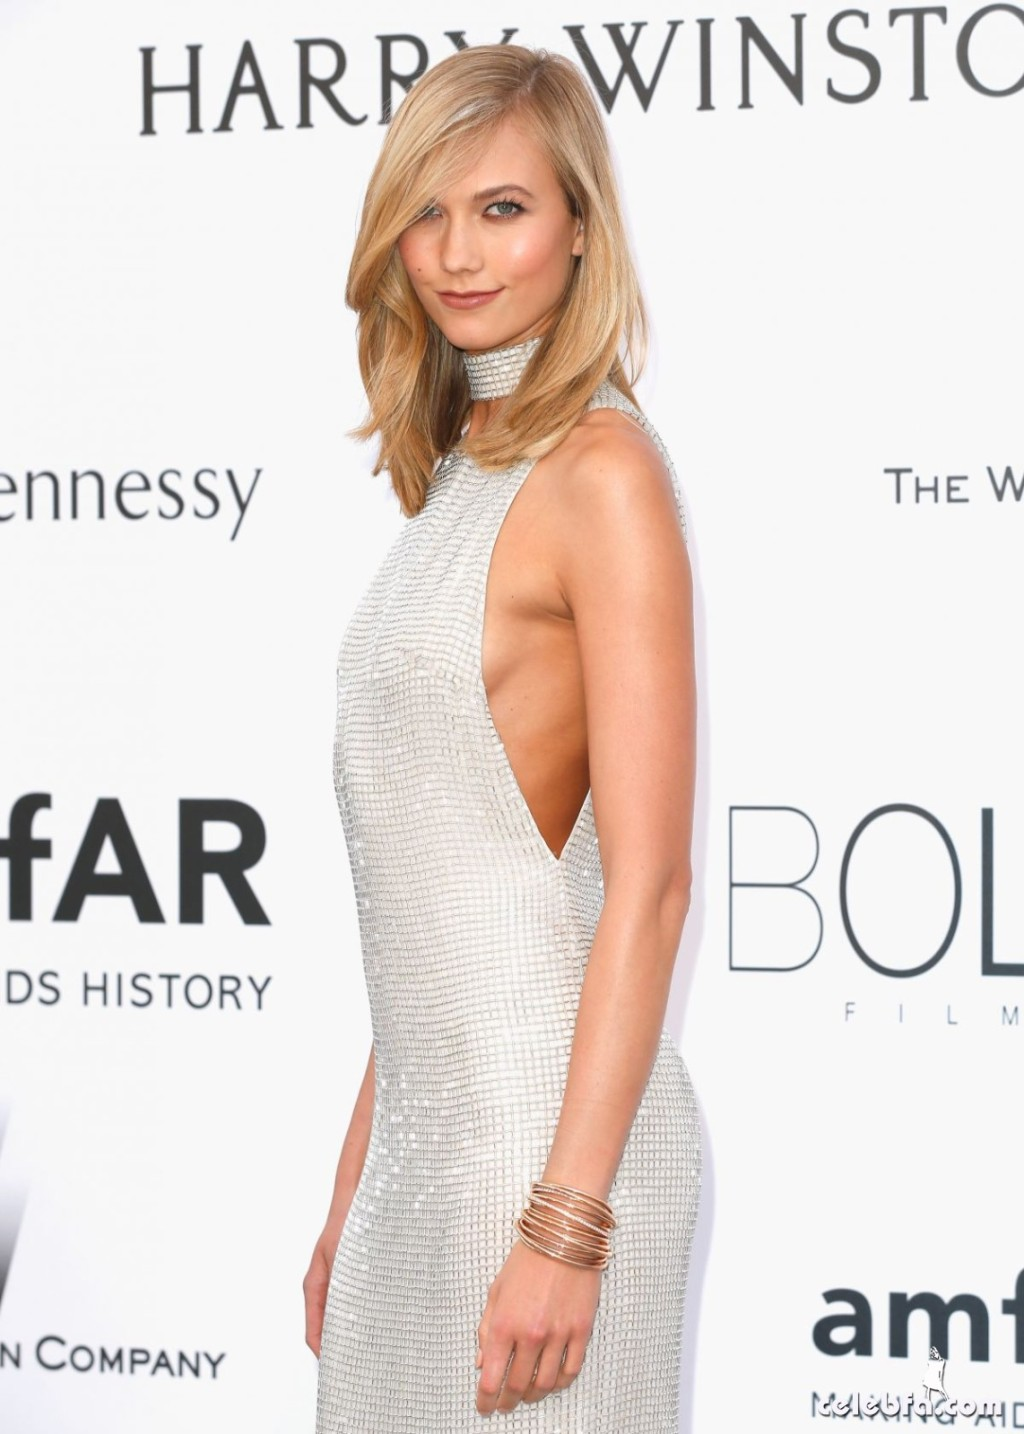 karlie-kloss-at-amfar-s-2015-cinema-against-aids-gala (1)